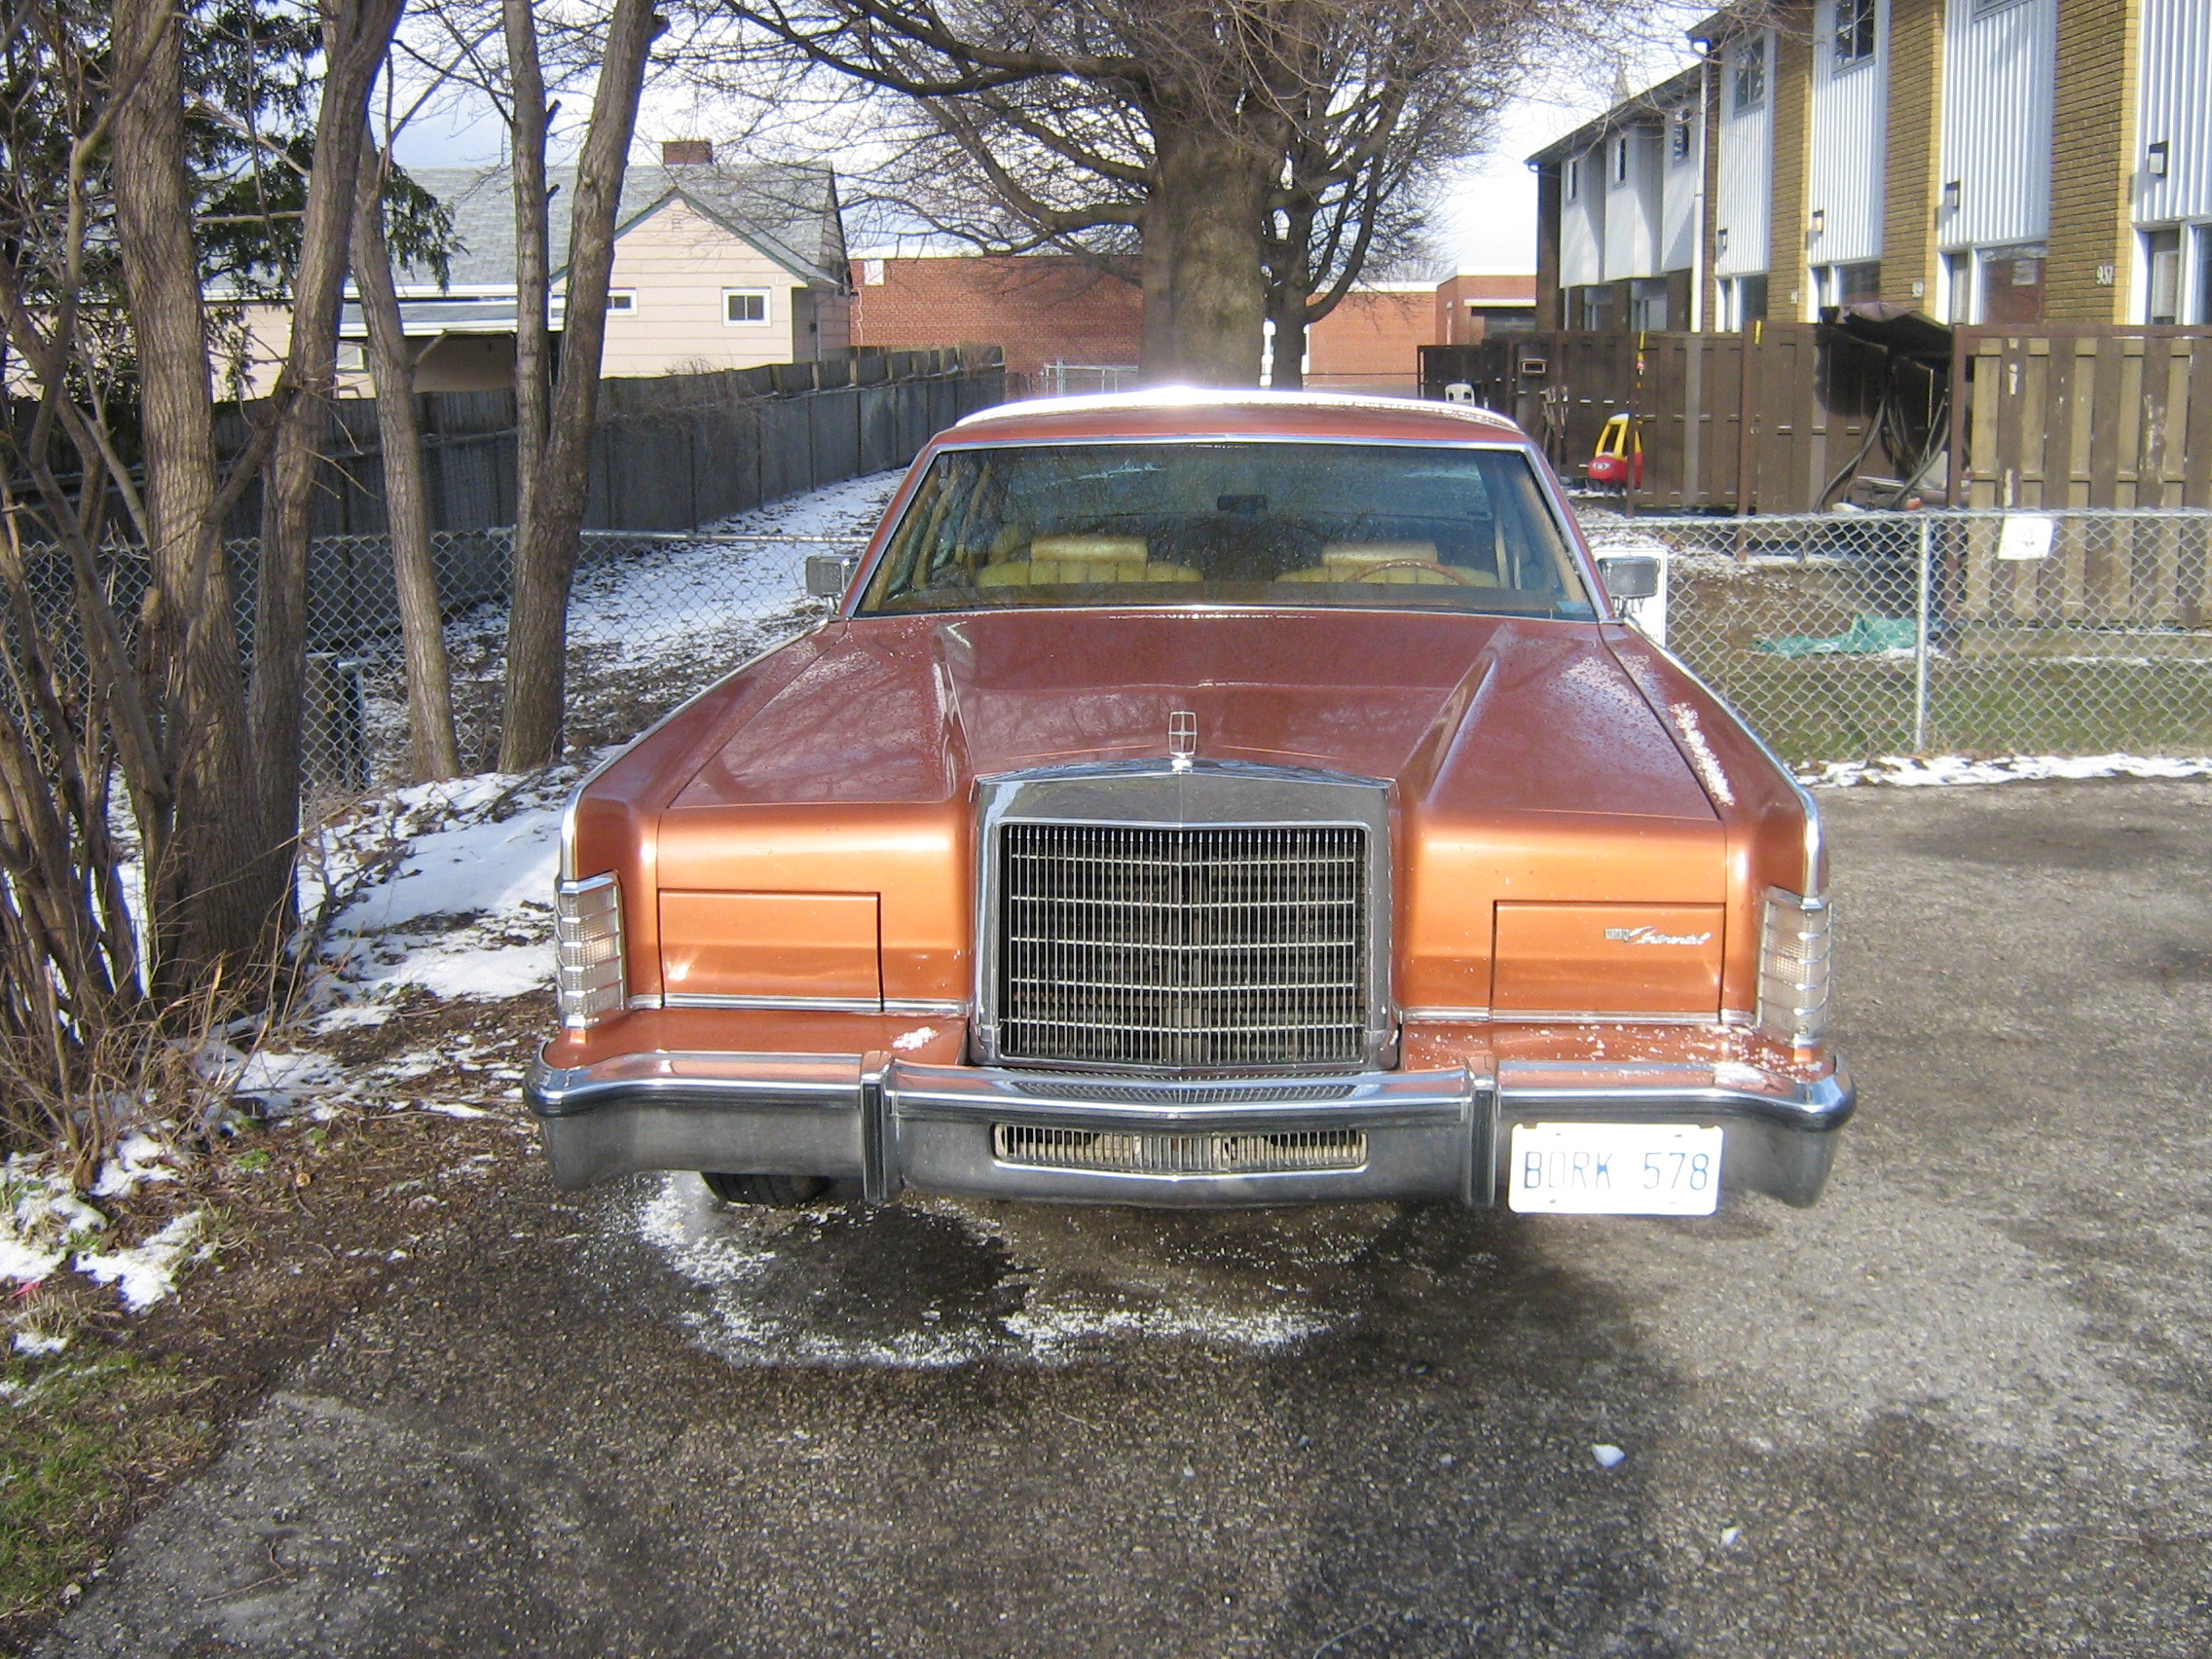 One_Fast_Omni 1977 Lincoln Continental 12919890